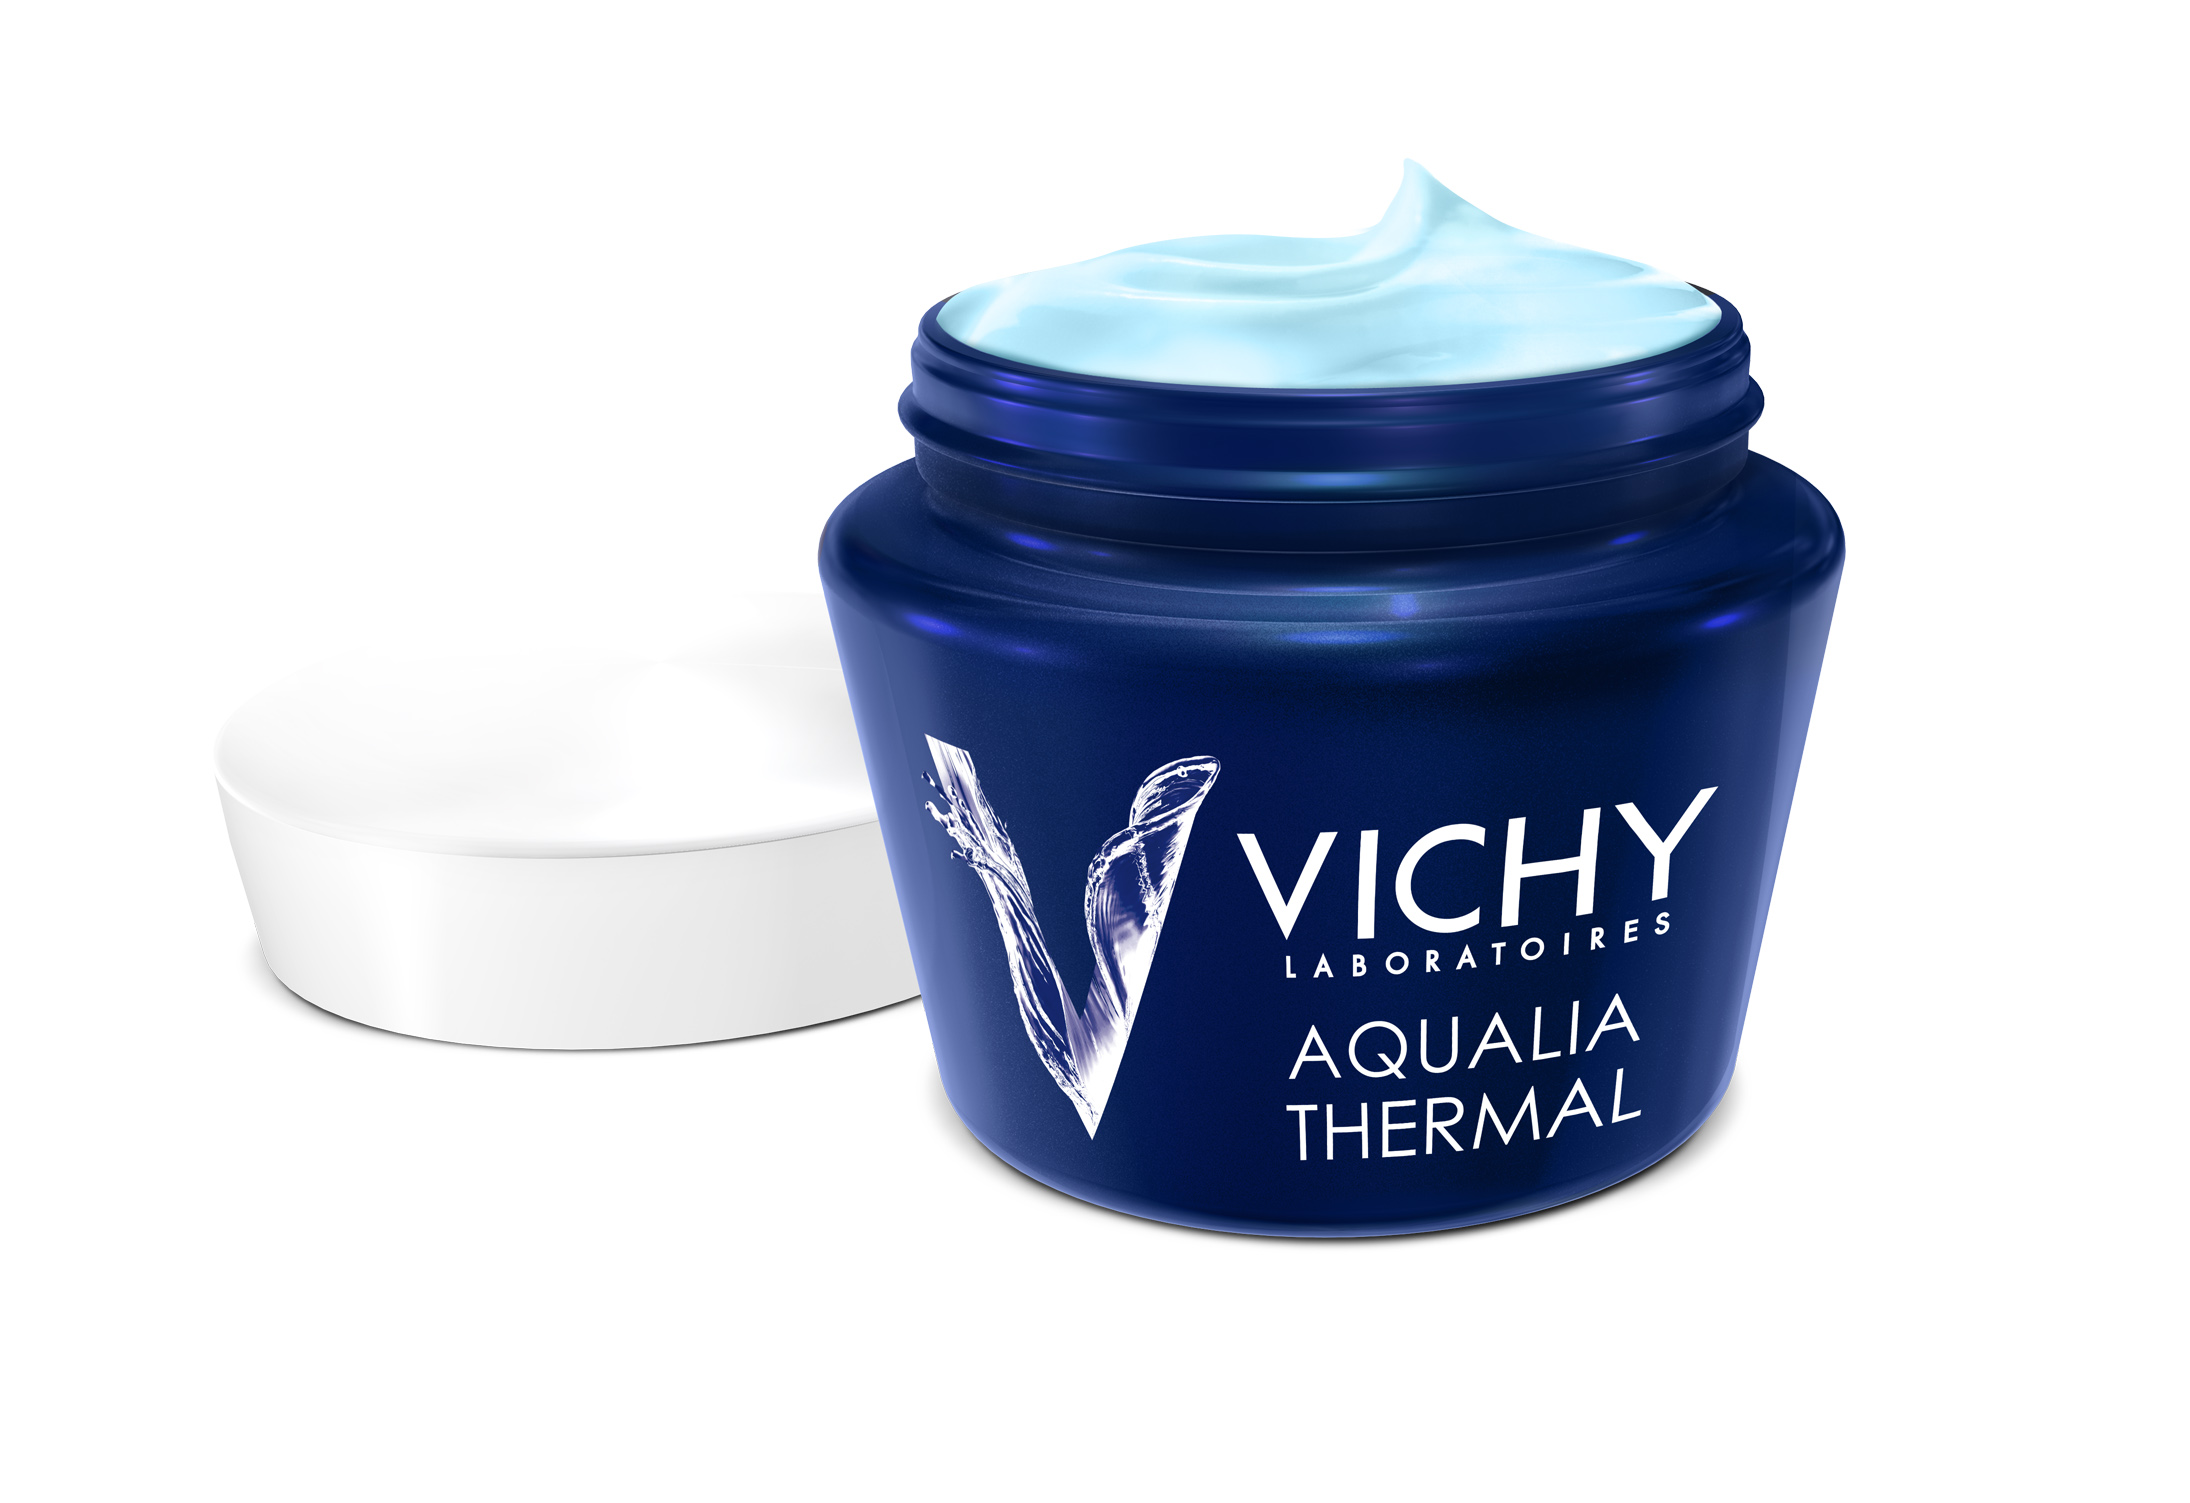 AQUALIA THERMAL NIGHT SPA packshot (open jar) BD